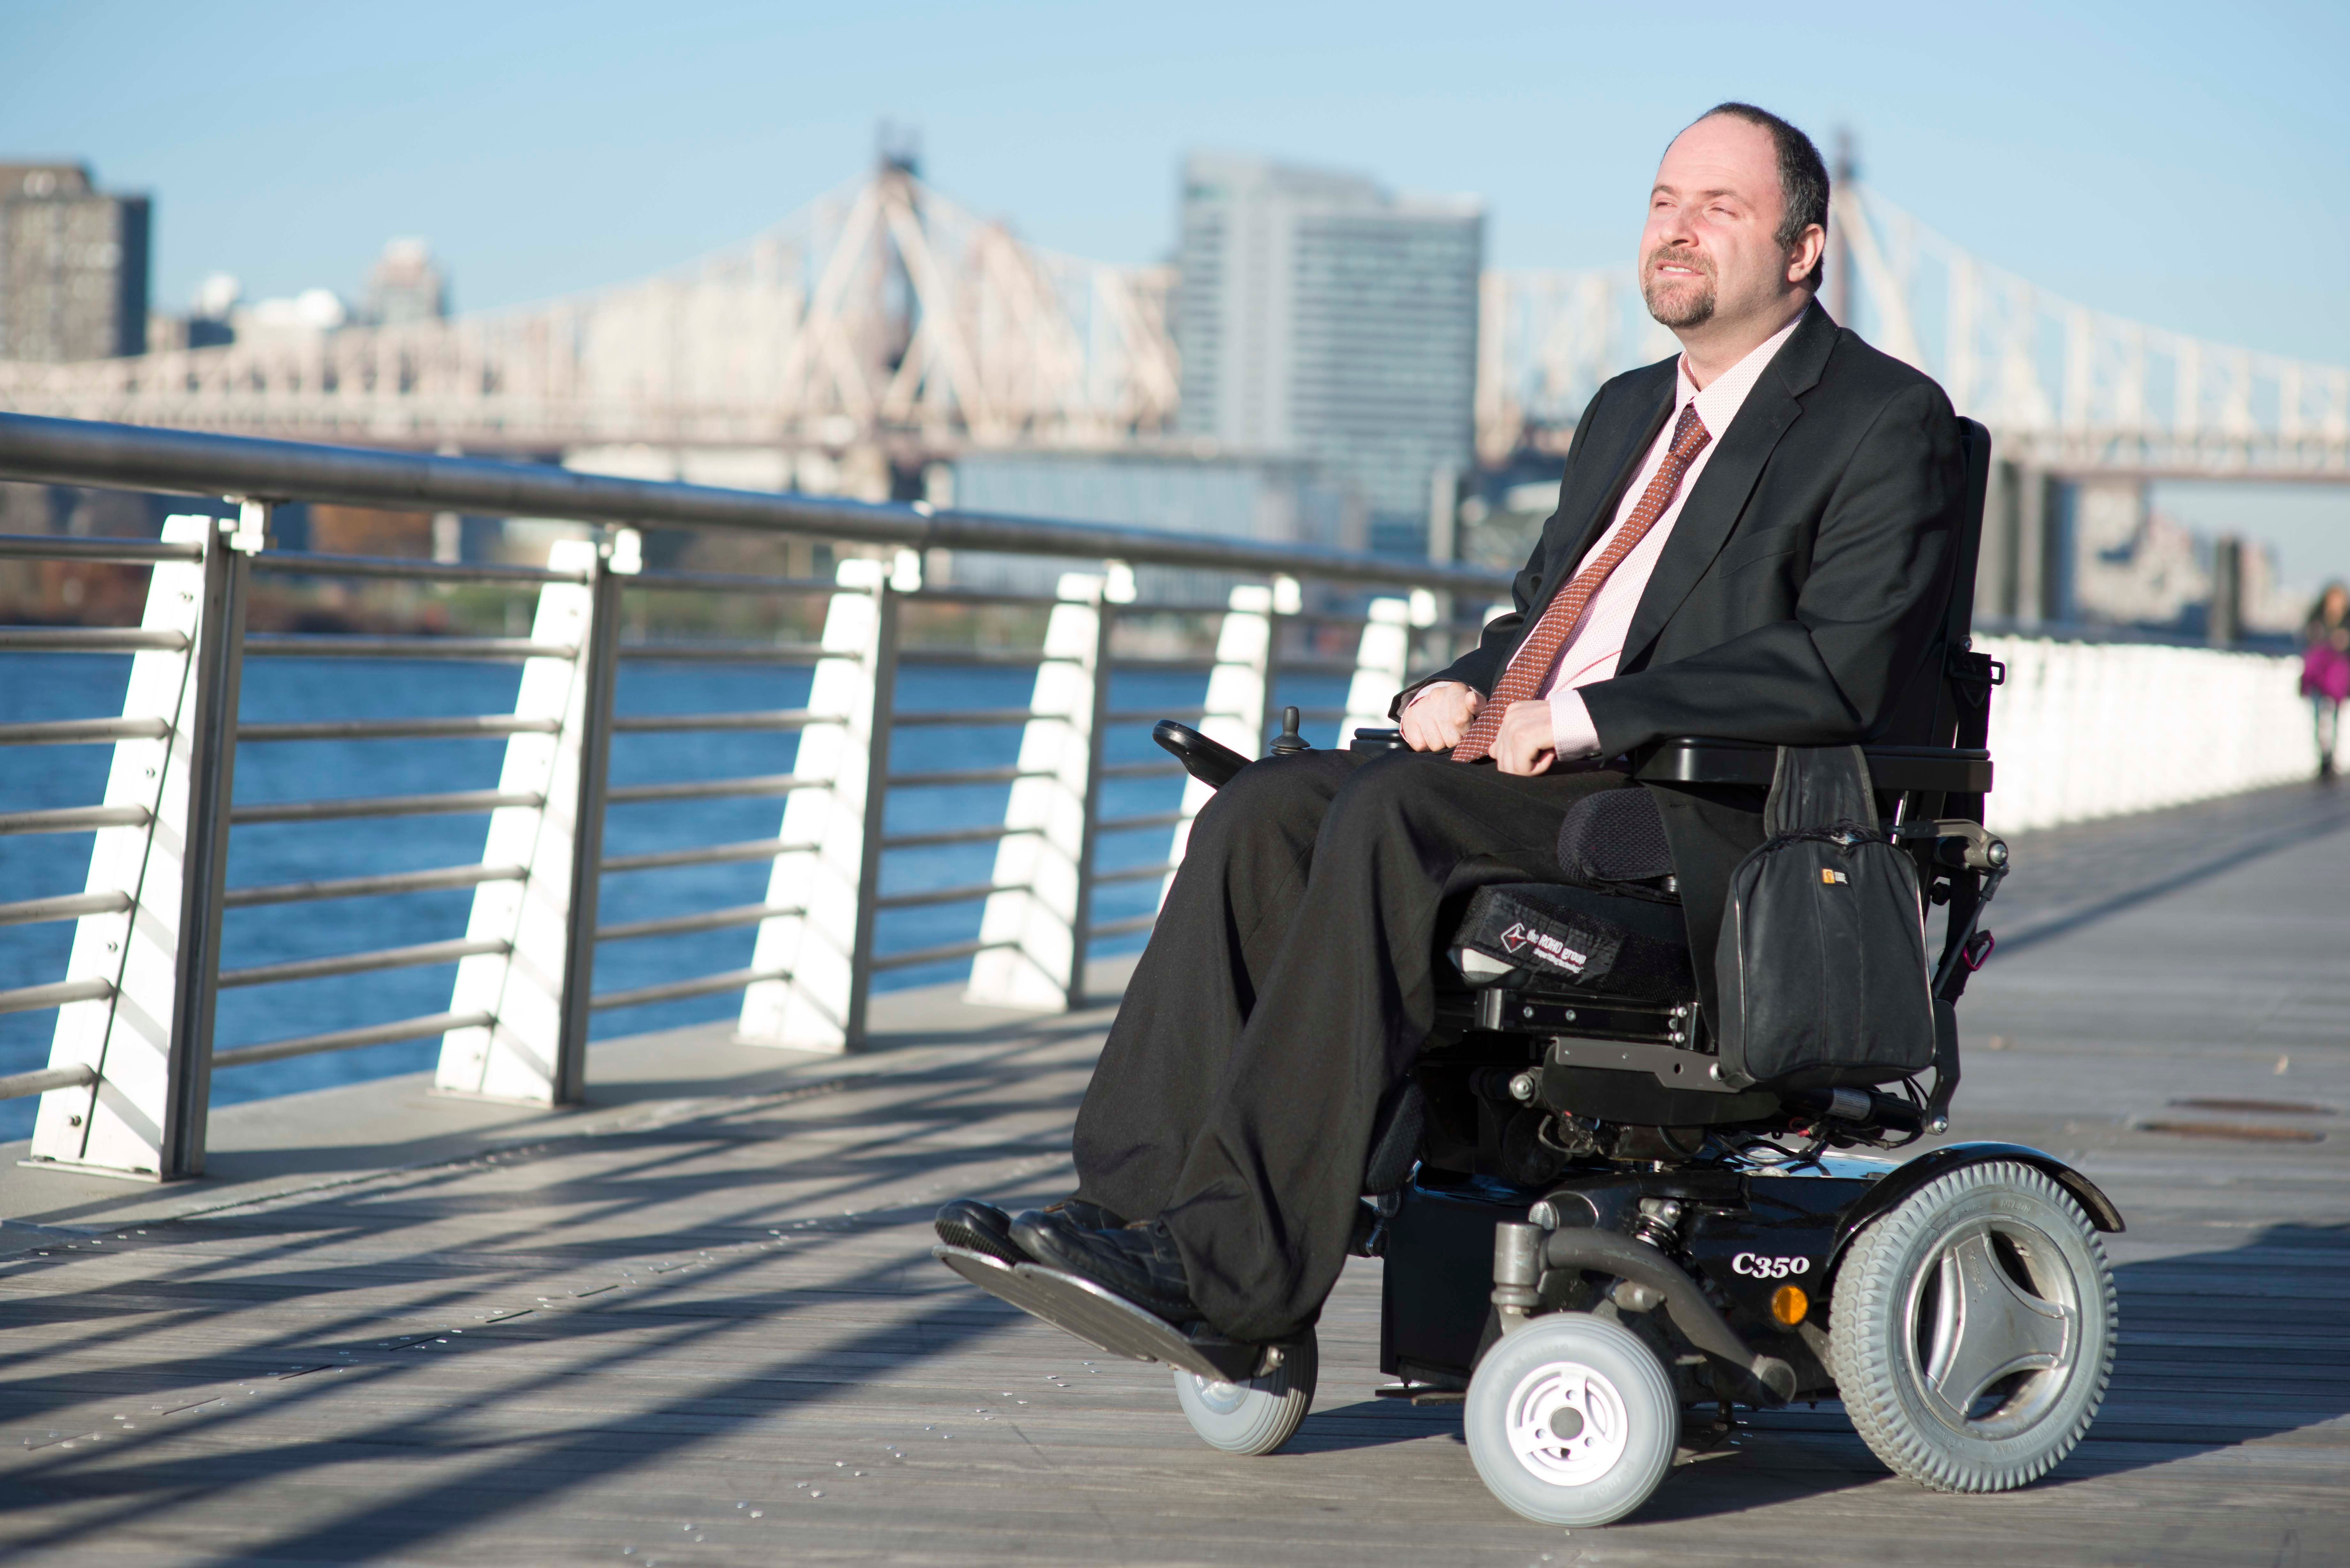 Subways Suck For New Yorkers With Disabilities. This Guy Wants To Change